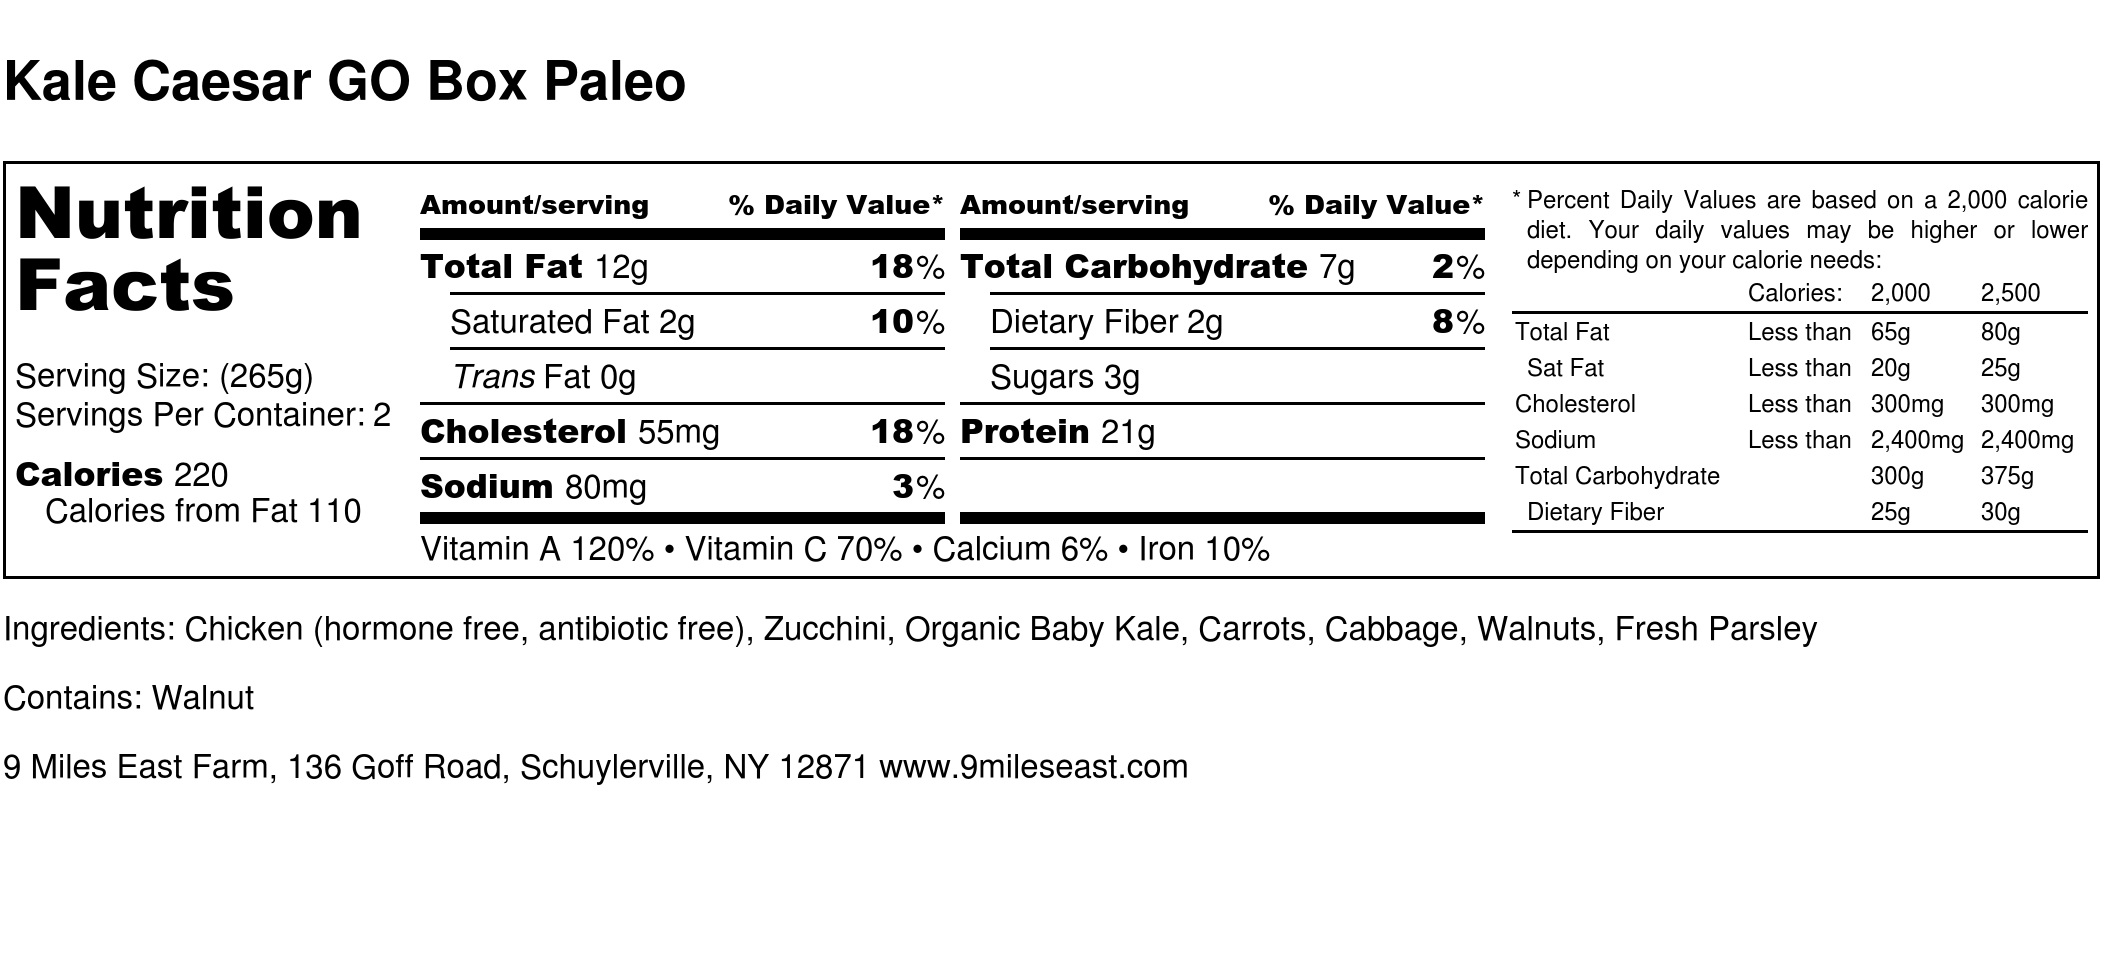 Kale Caesar GO Box Paleo - Nutrition Label.jpg